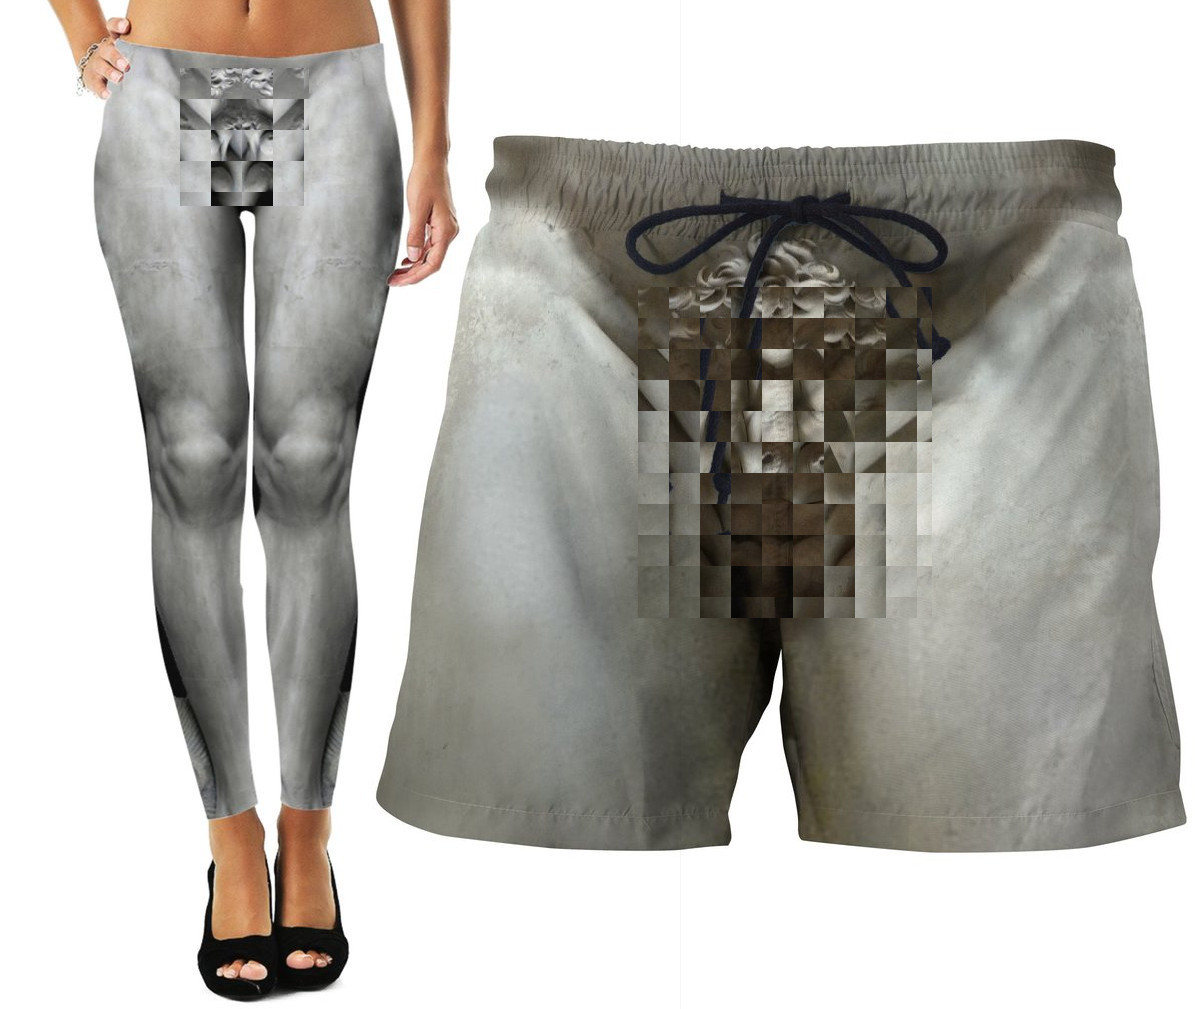 Optical illusion tights and swim shorts give you the junk of Michaelangelo's David